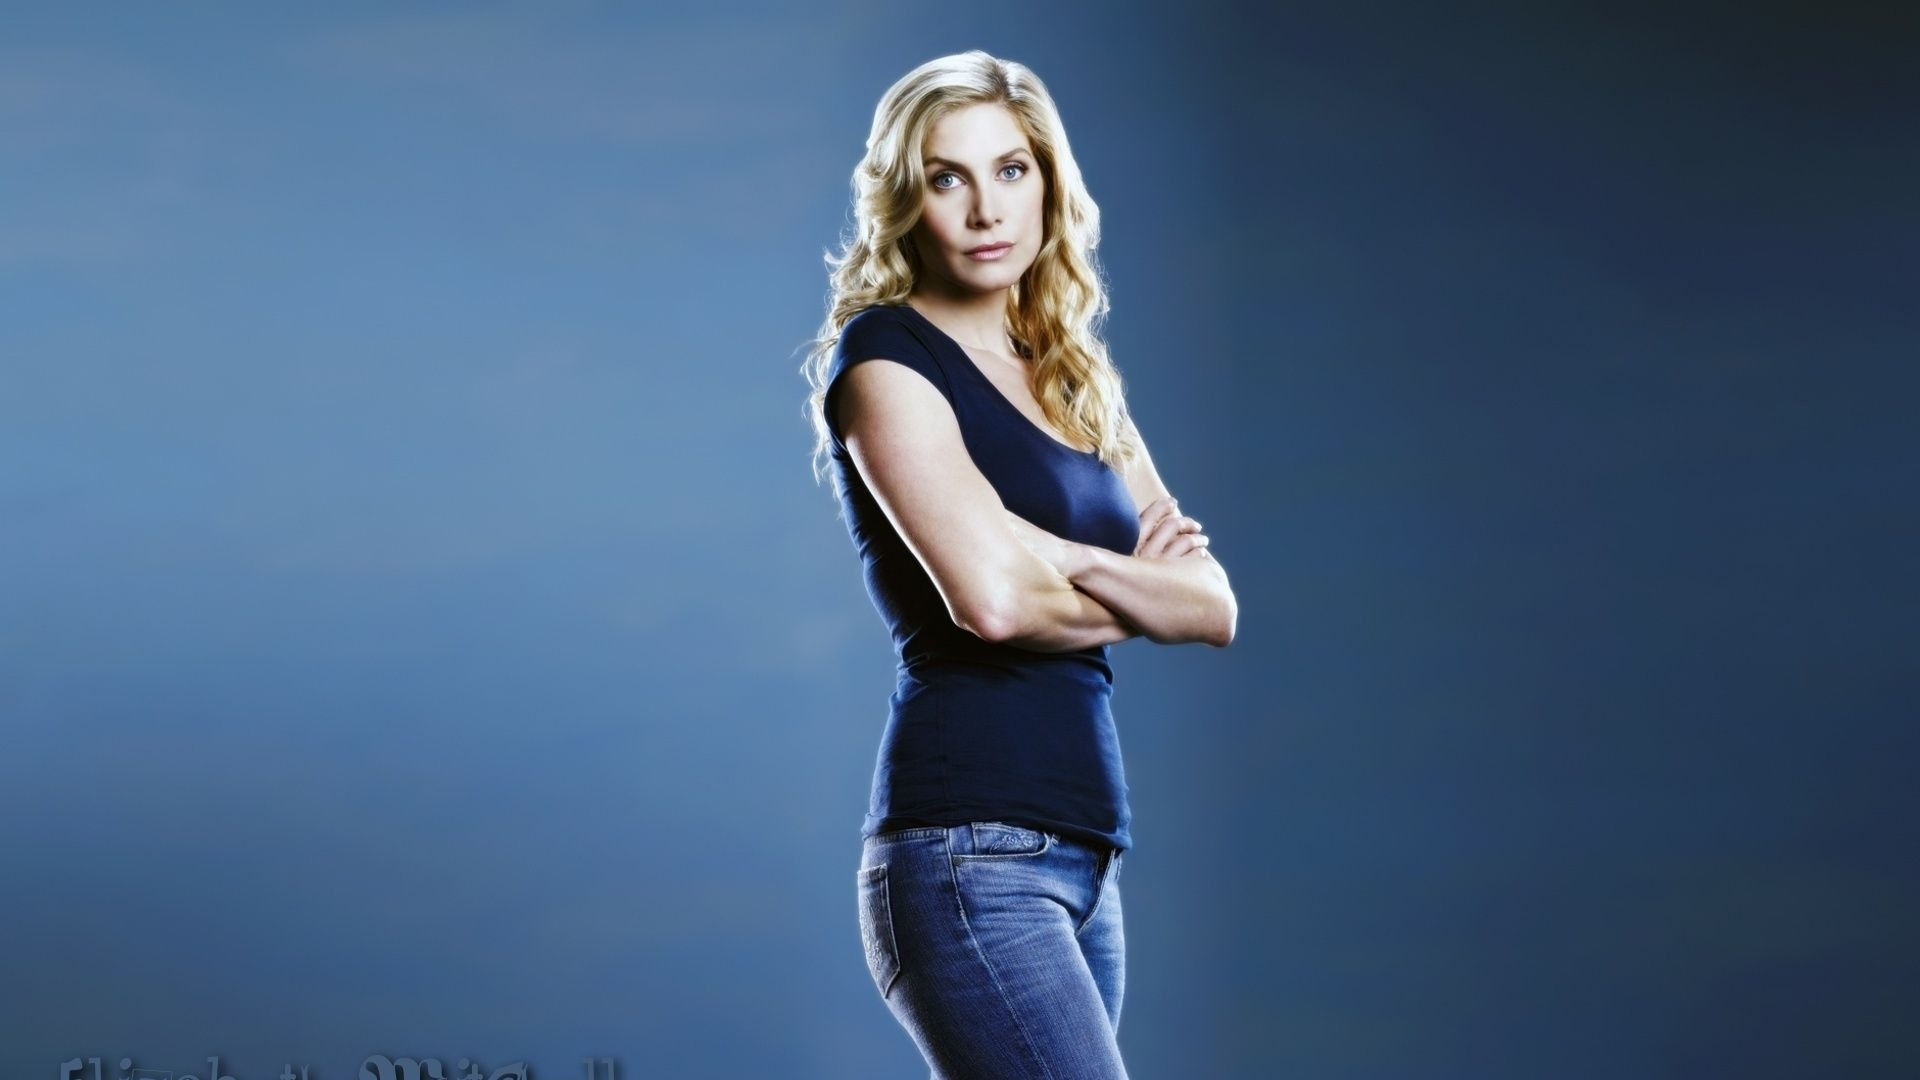 Elizabeth Mitchell #010 - 1920x1080 Wallpapers Pictures Photos Images